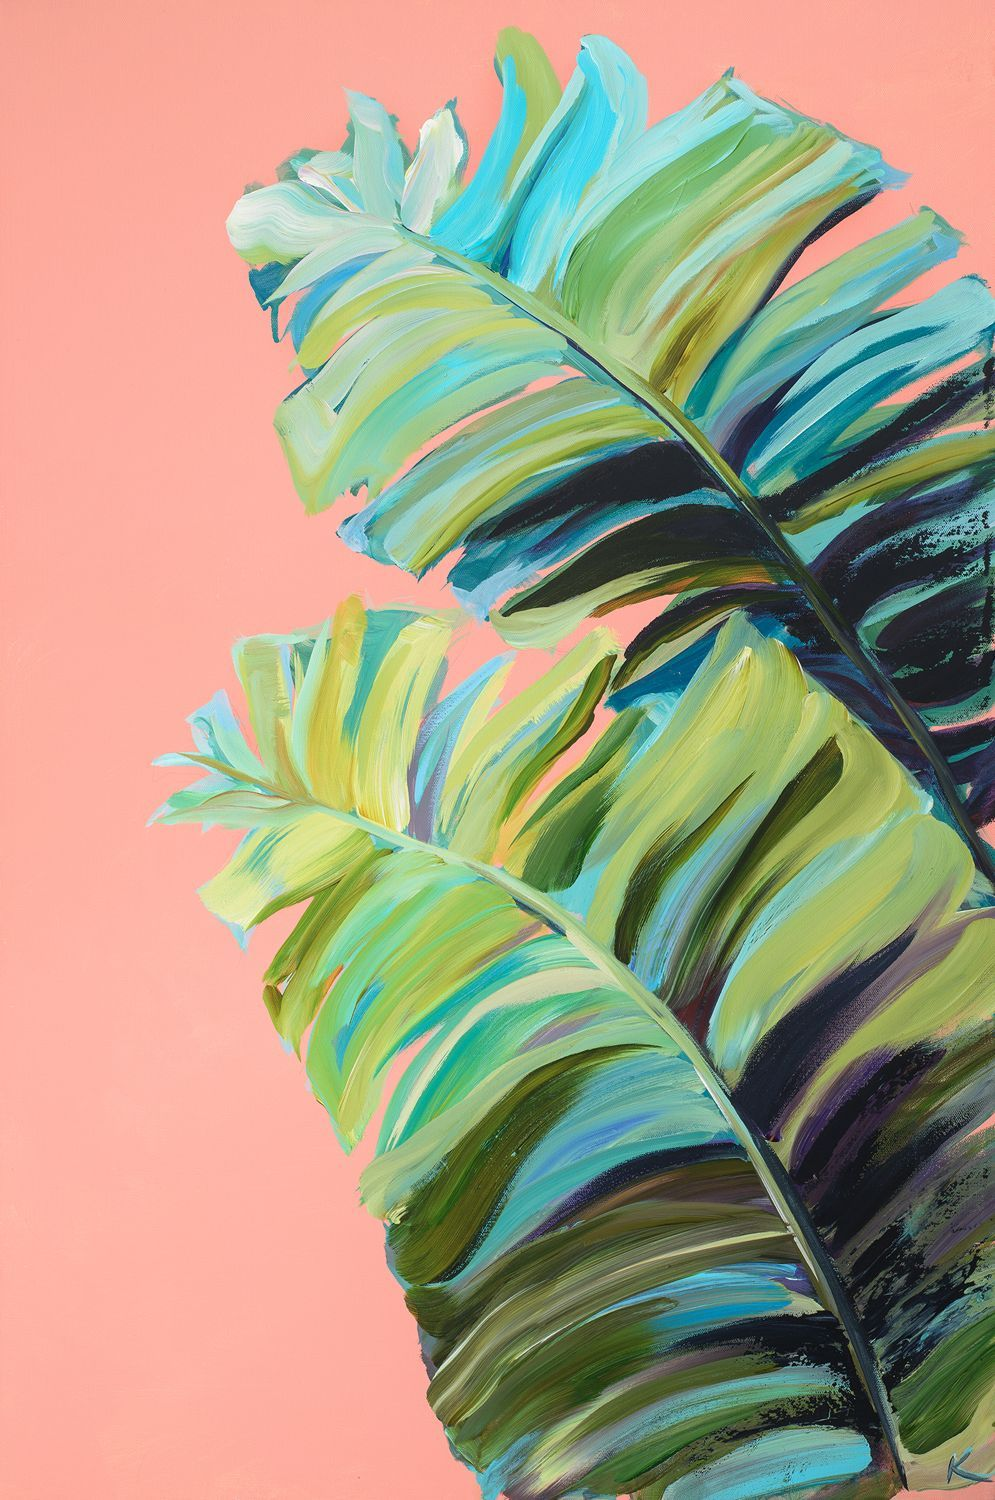 Krista Skehan's colourful paintings that collide with a love of California coastal cool